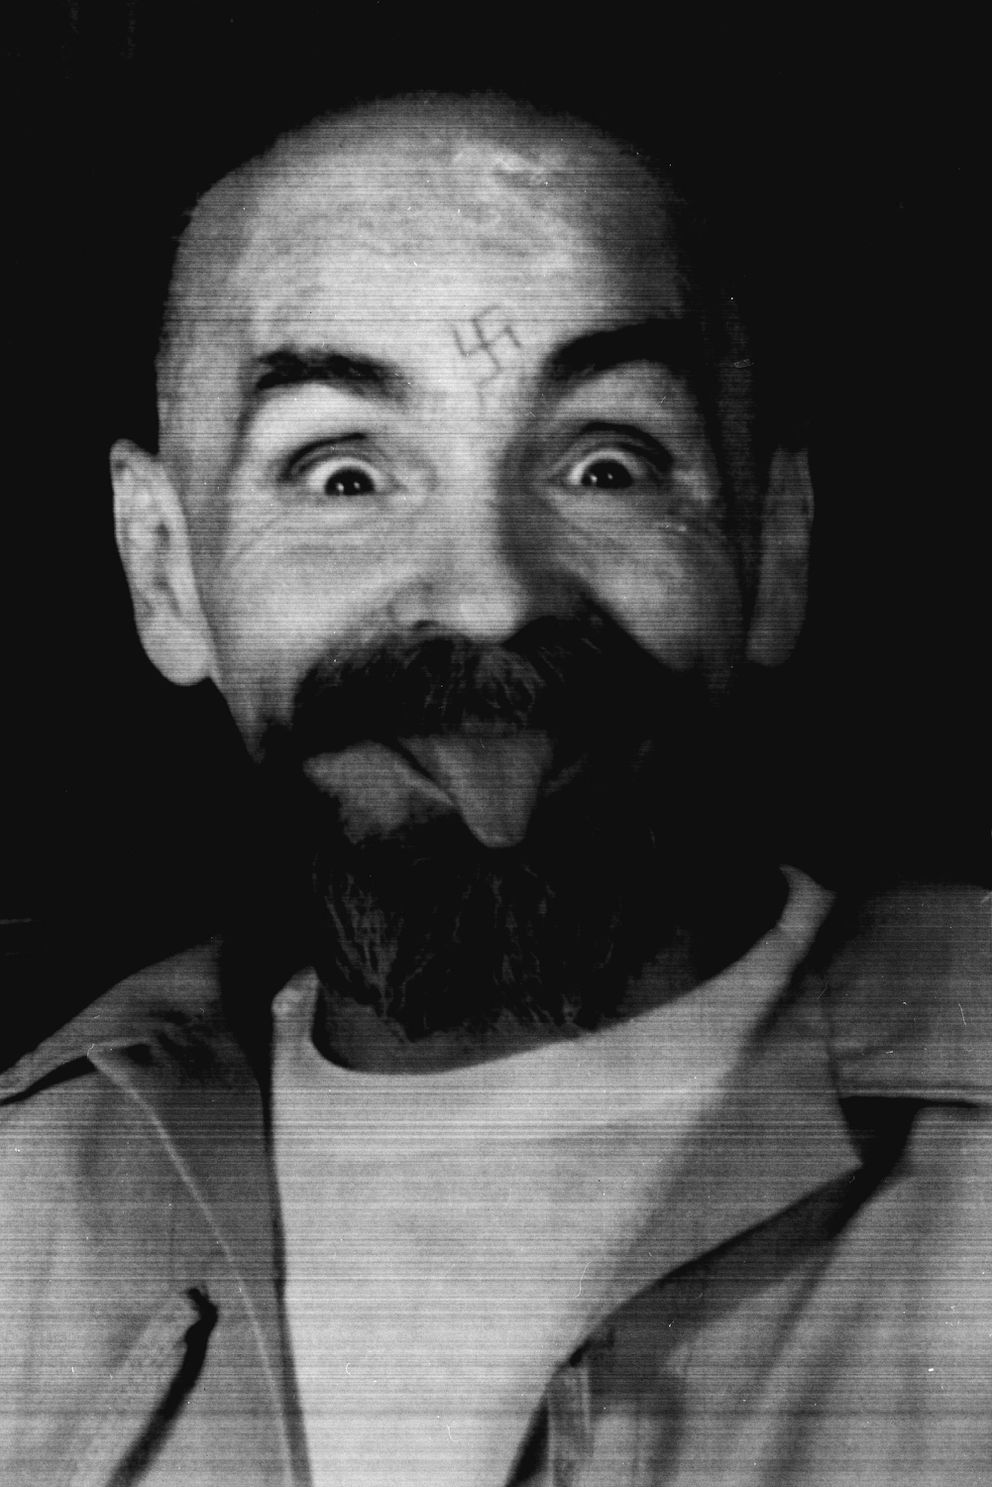 Charles Manson clowns around as he is led to his cell upon the conclusion of his exclusive interview with Reuters August 25, 1989. REUTERS/File